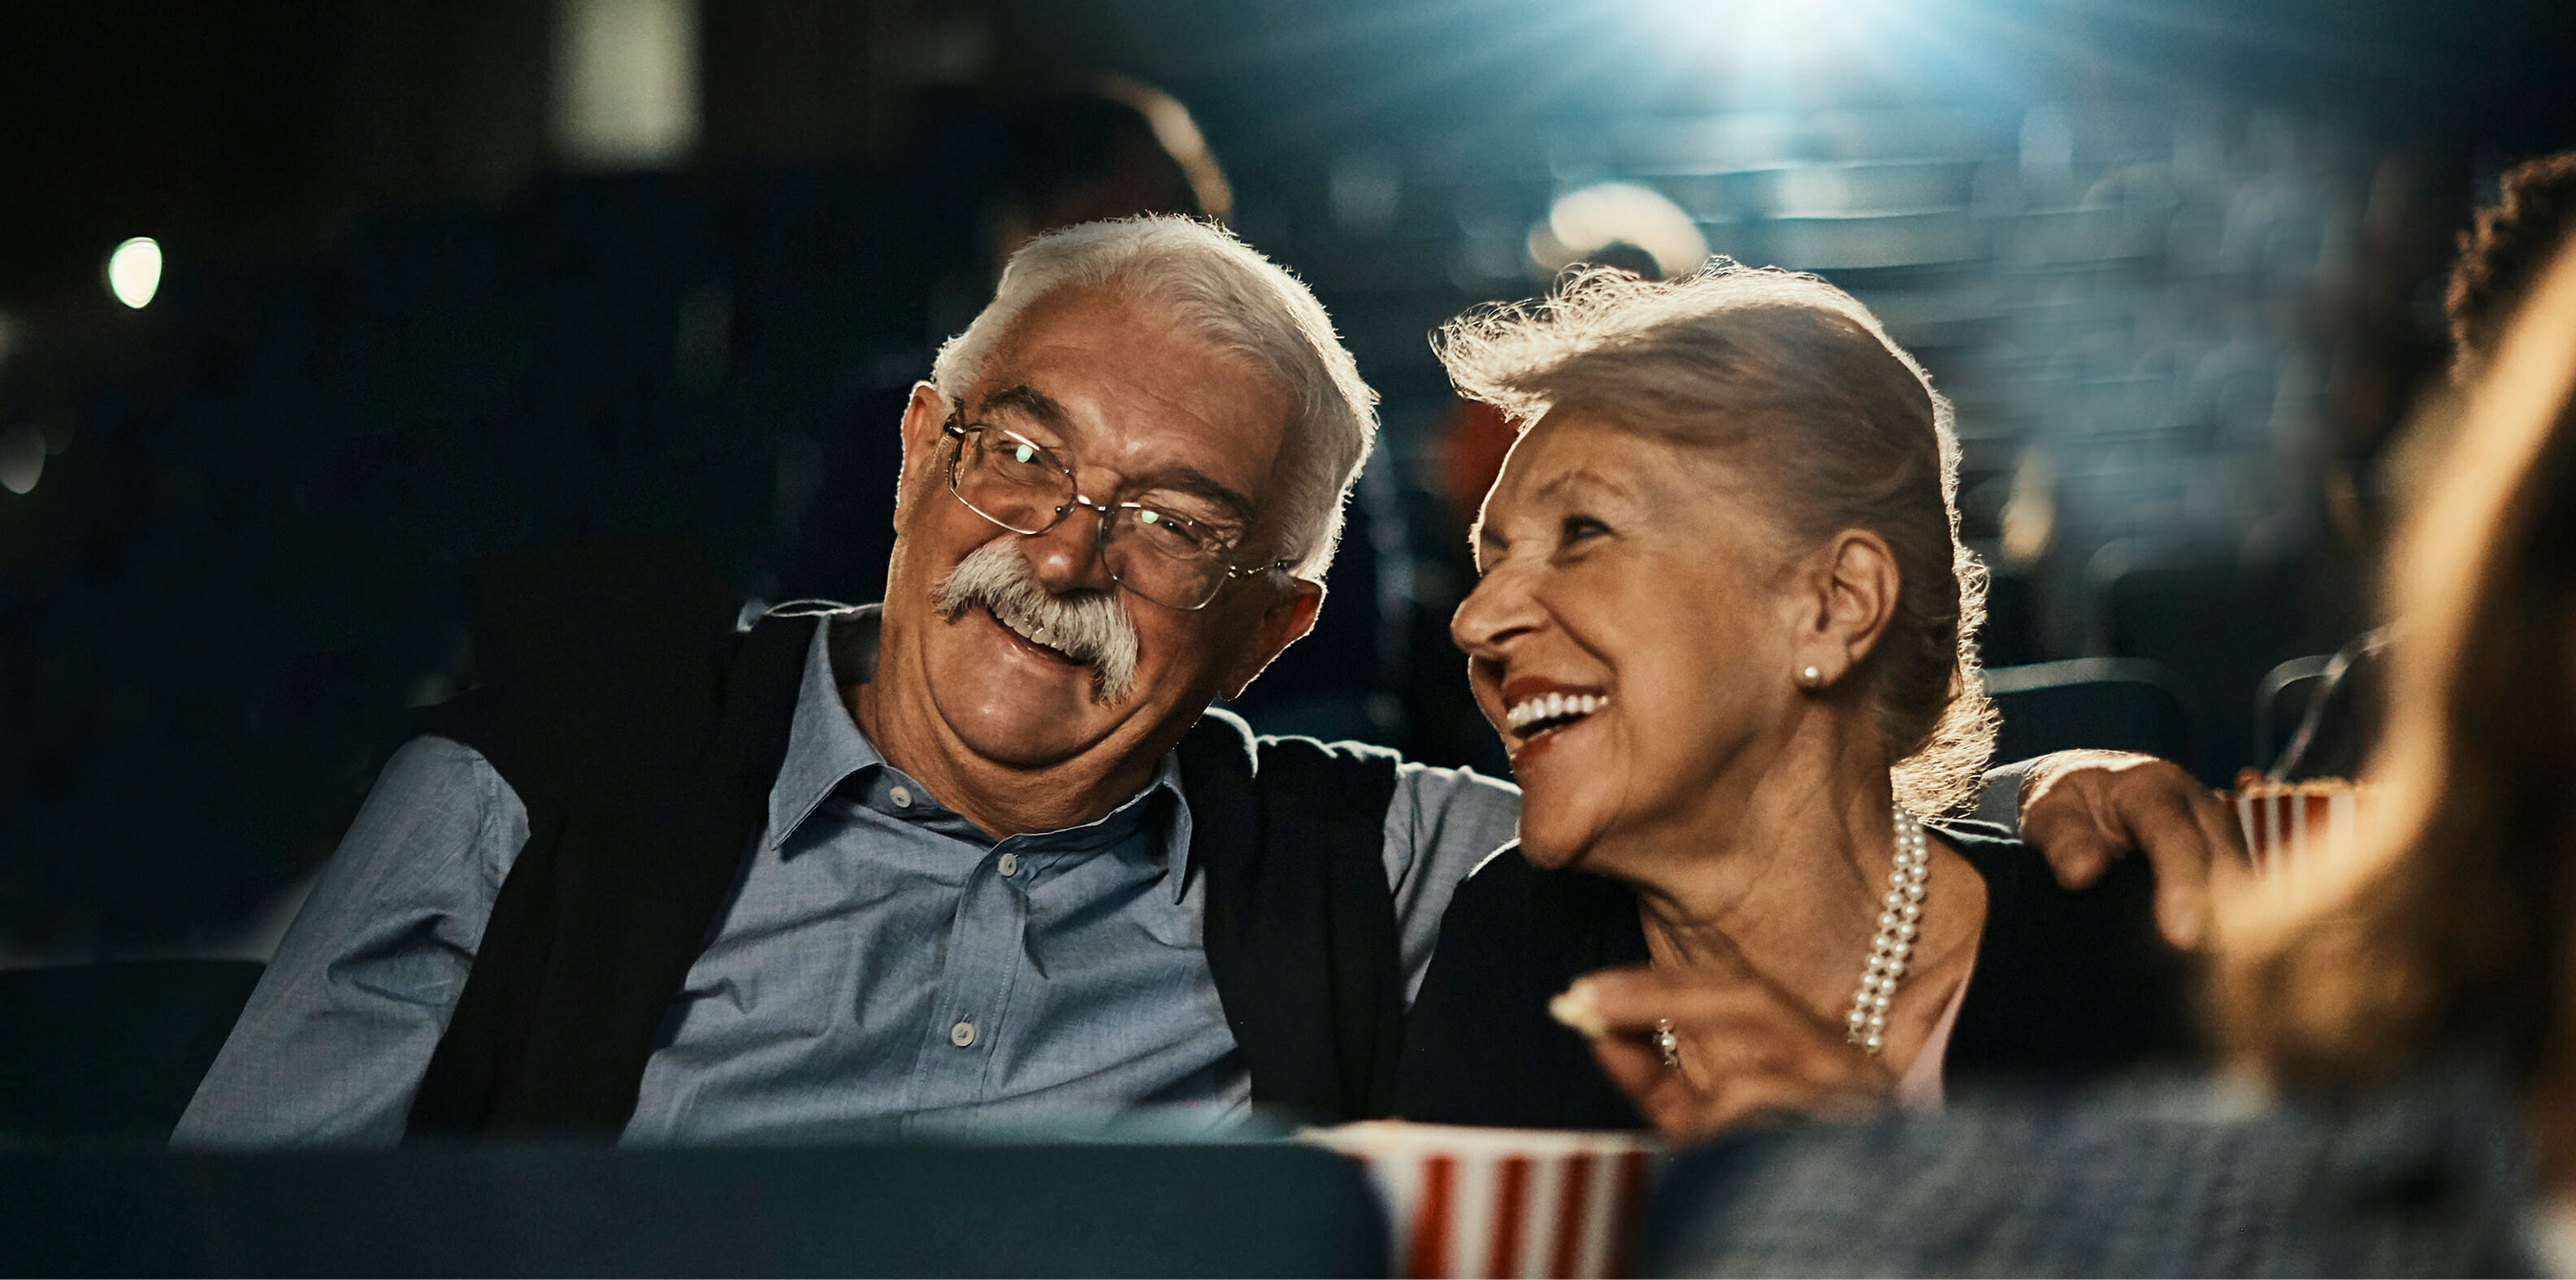 Senior Couple enjoying a movie and eating popcorn